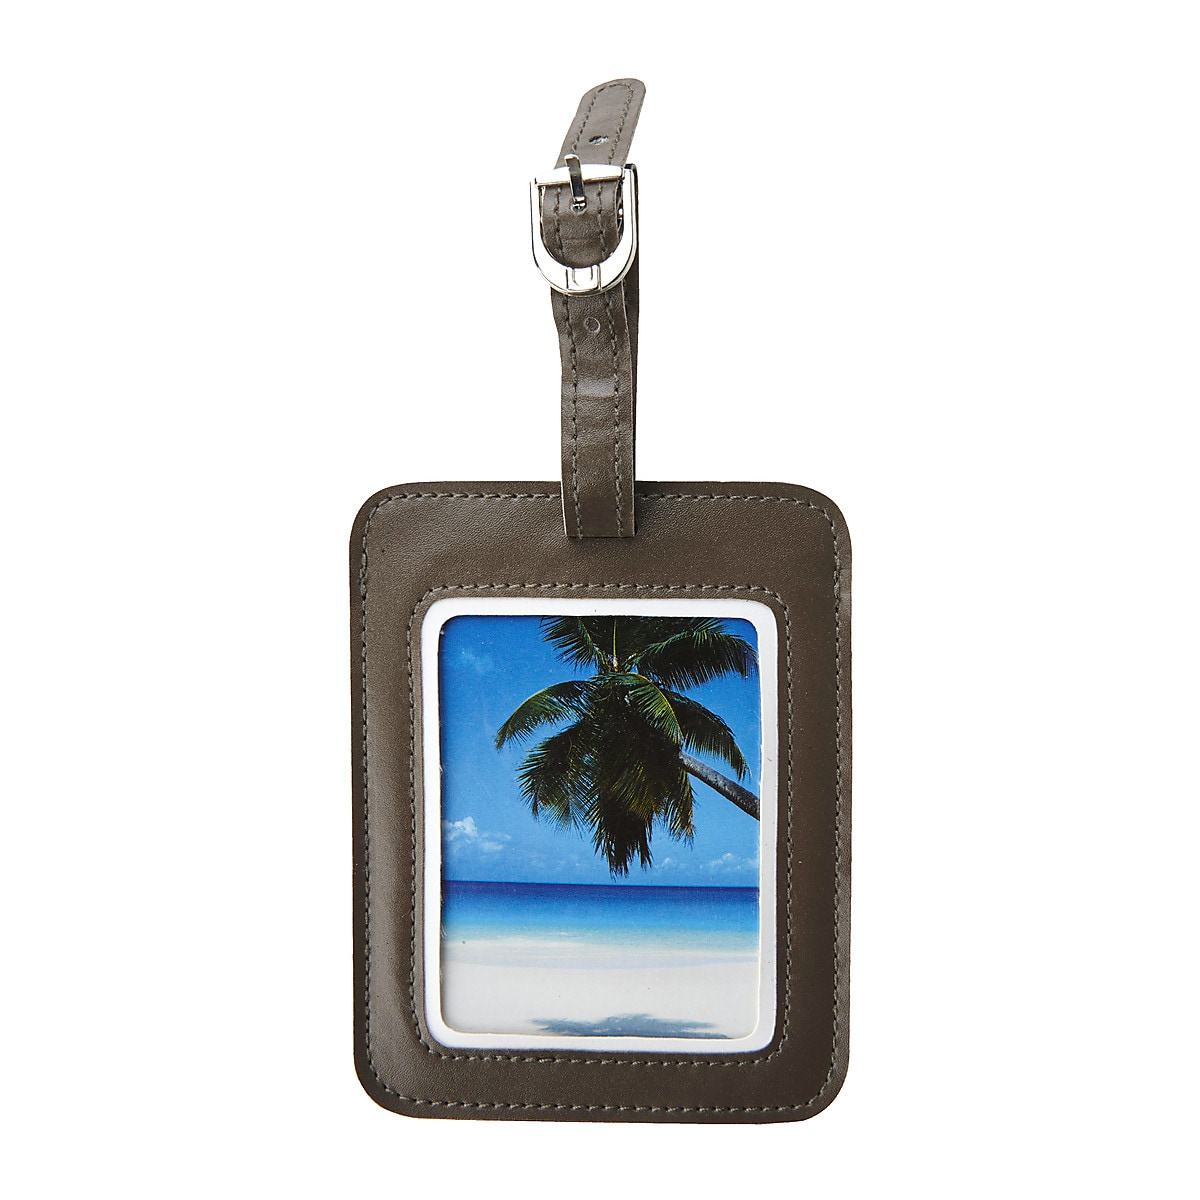 Asaklitt Luggage Tag with Photo Pocket